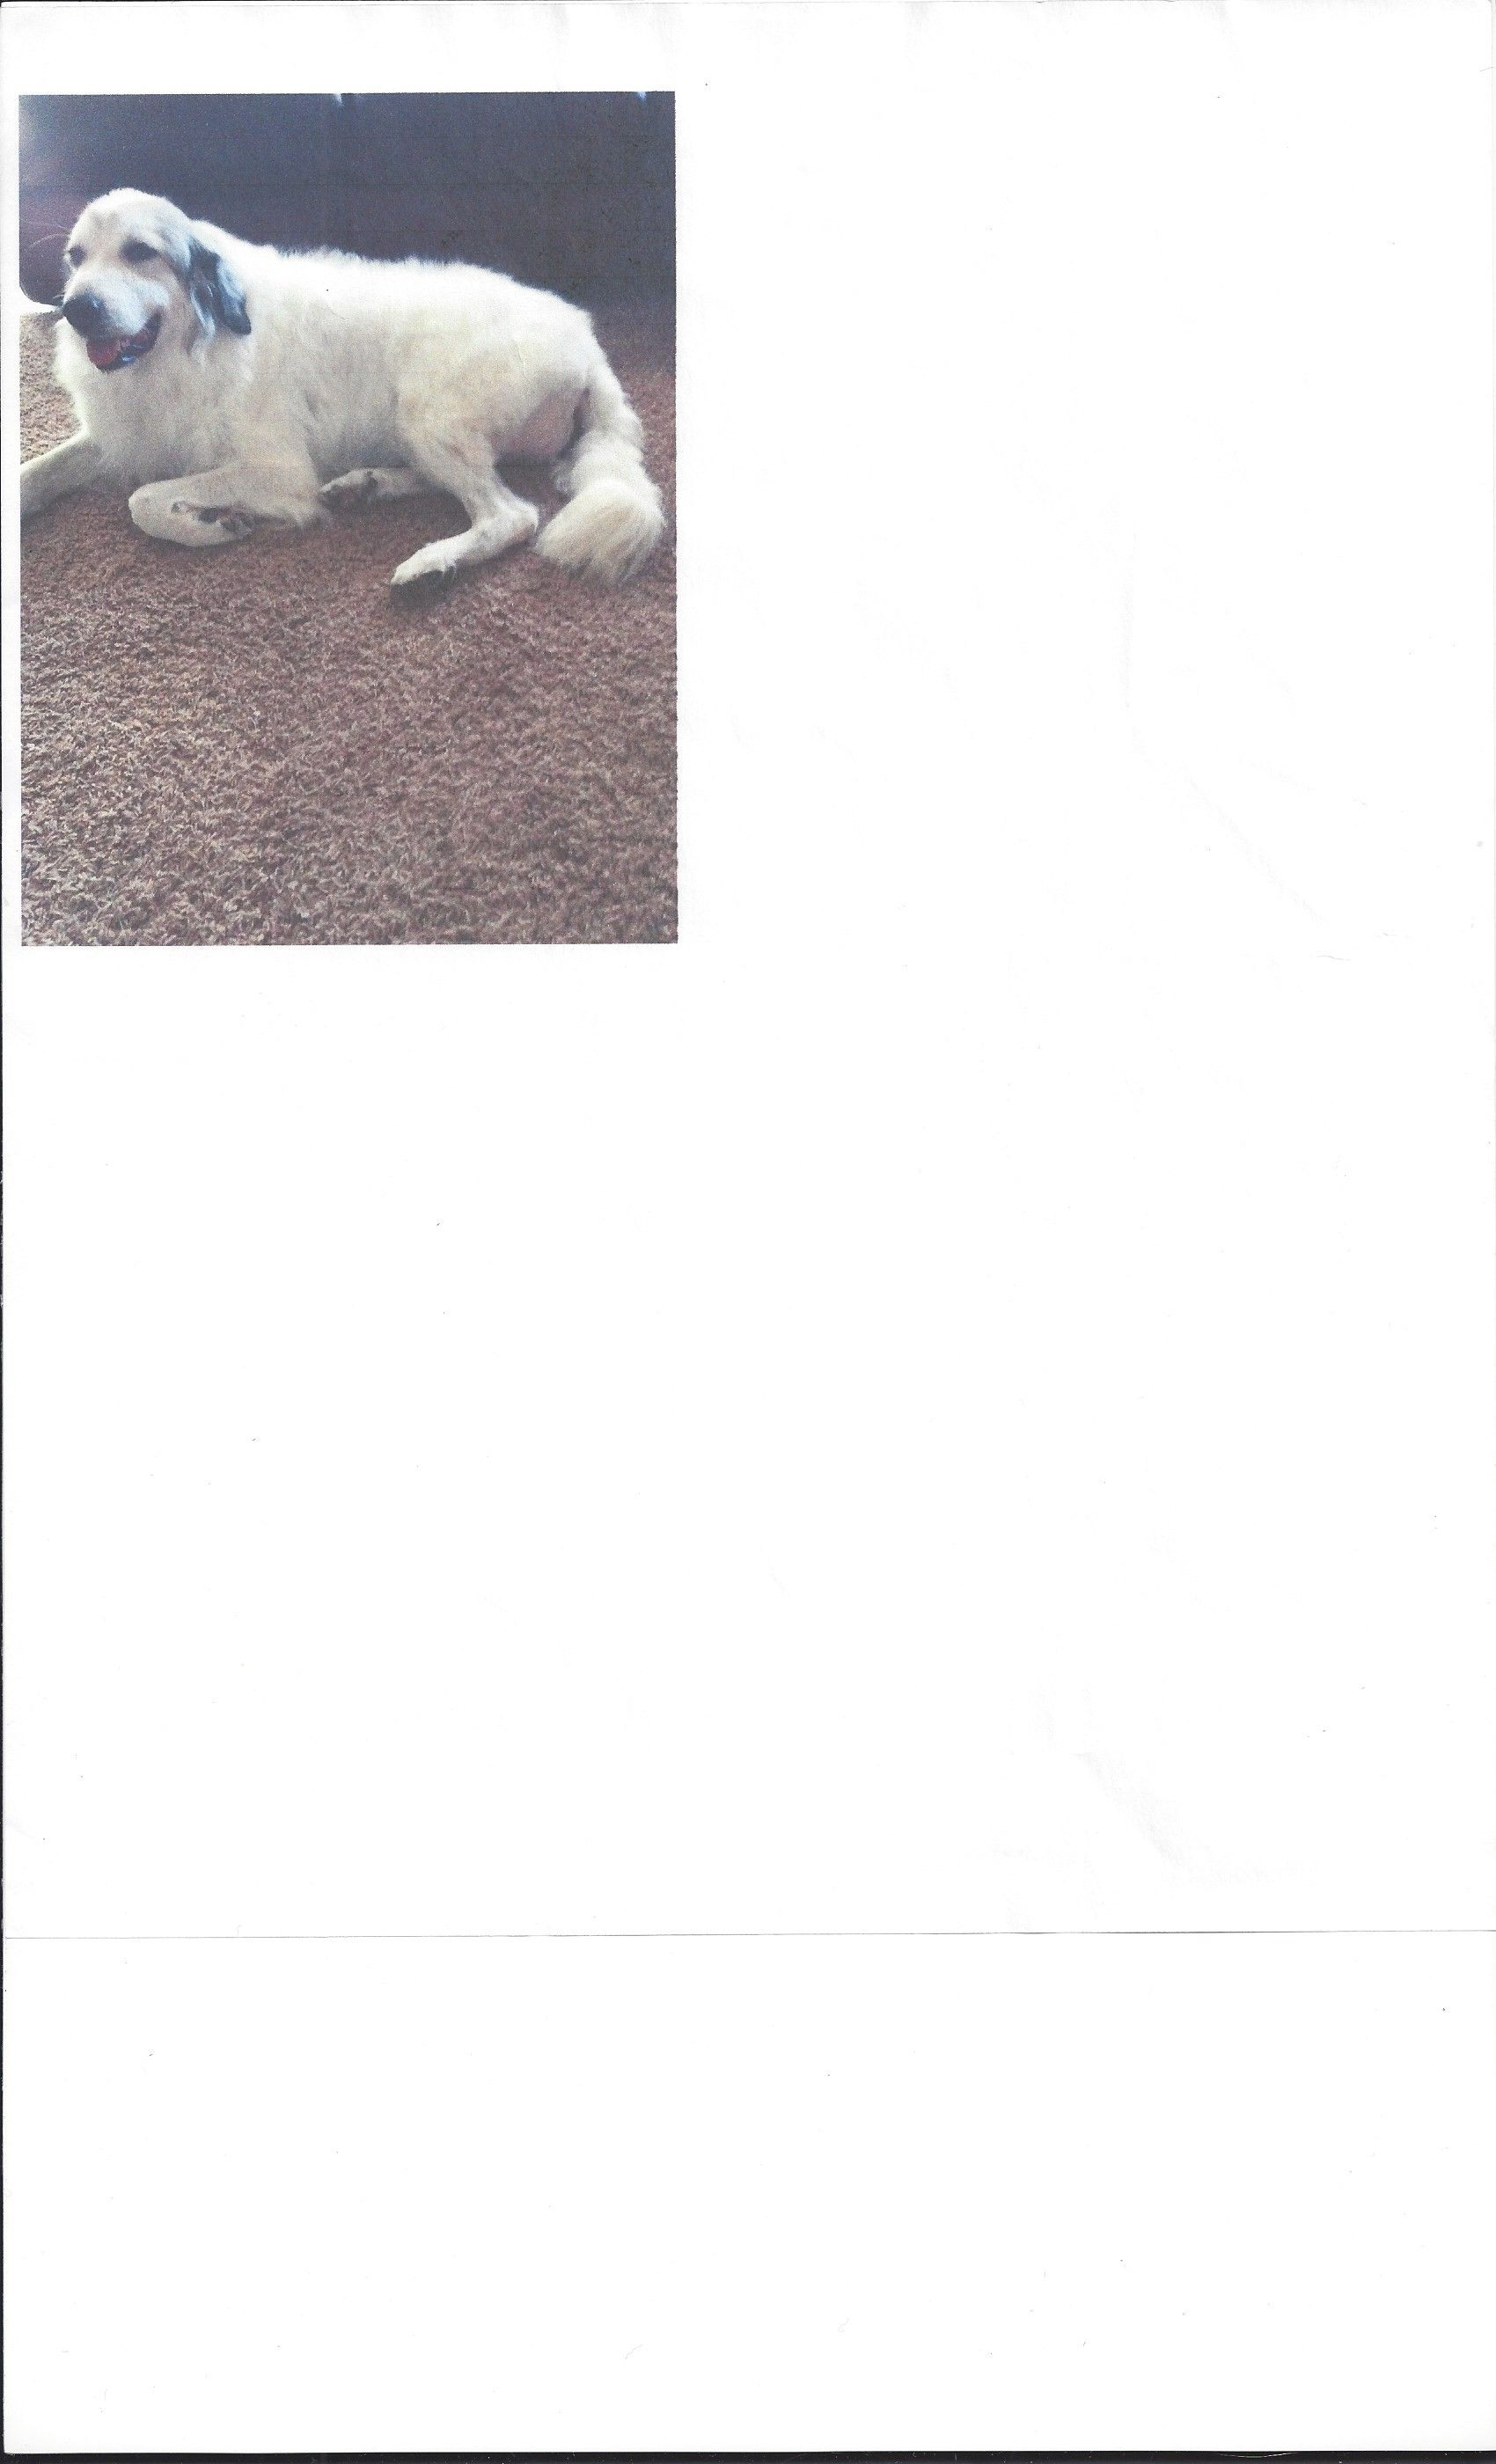 Great Pyrenees Dog For Adoption In Albuquerque Nm Adn 502853 On